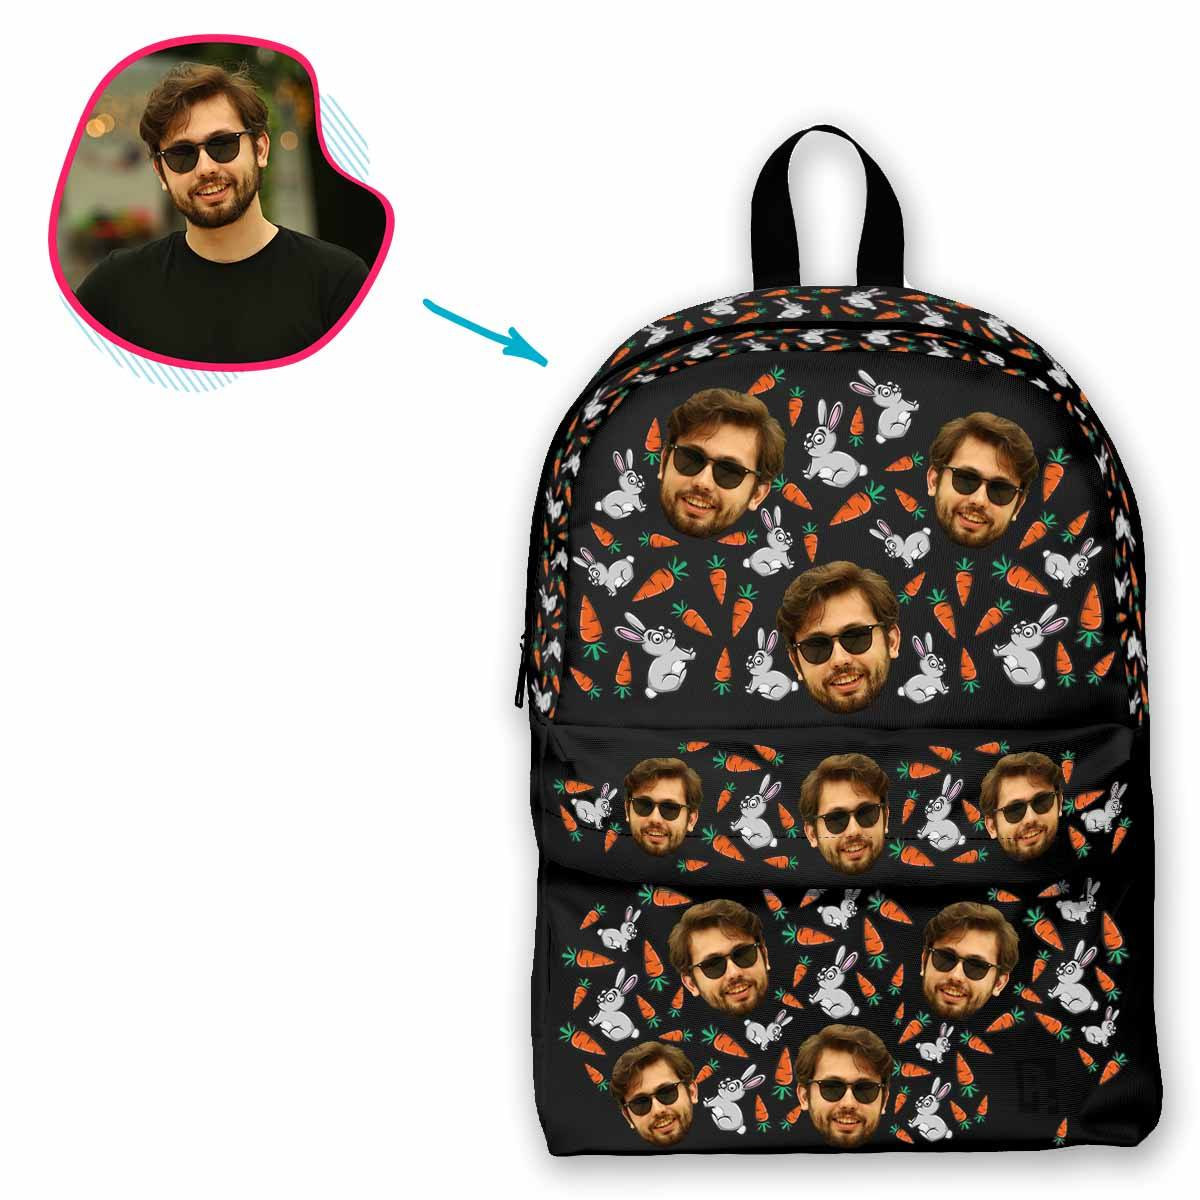 dark Bunny classic backpack personalized with photo of face printed on it